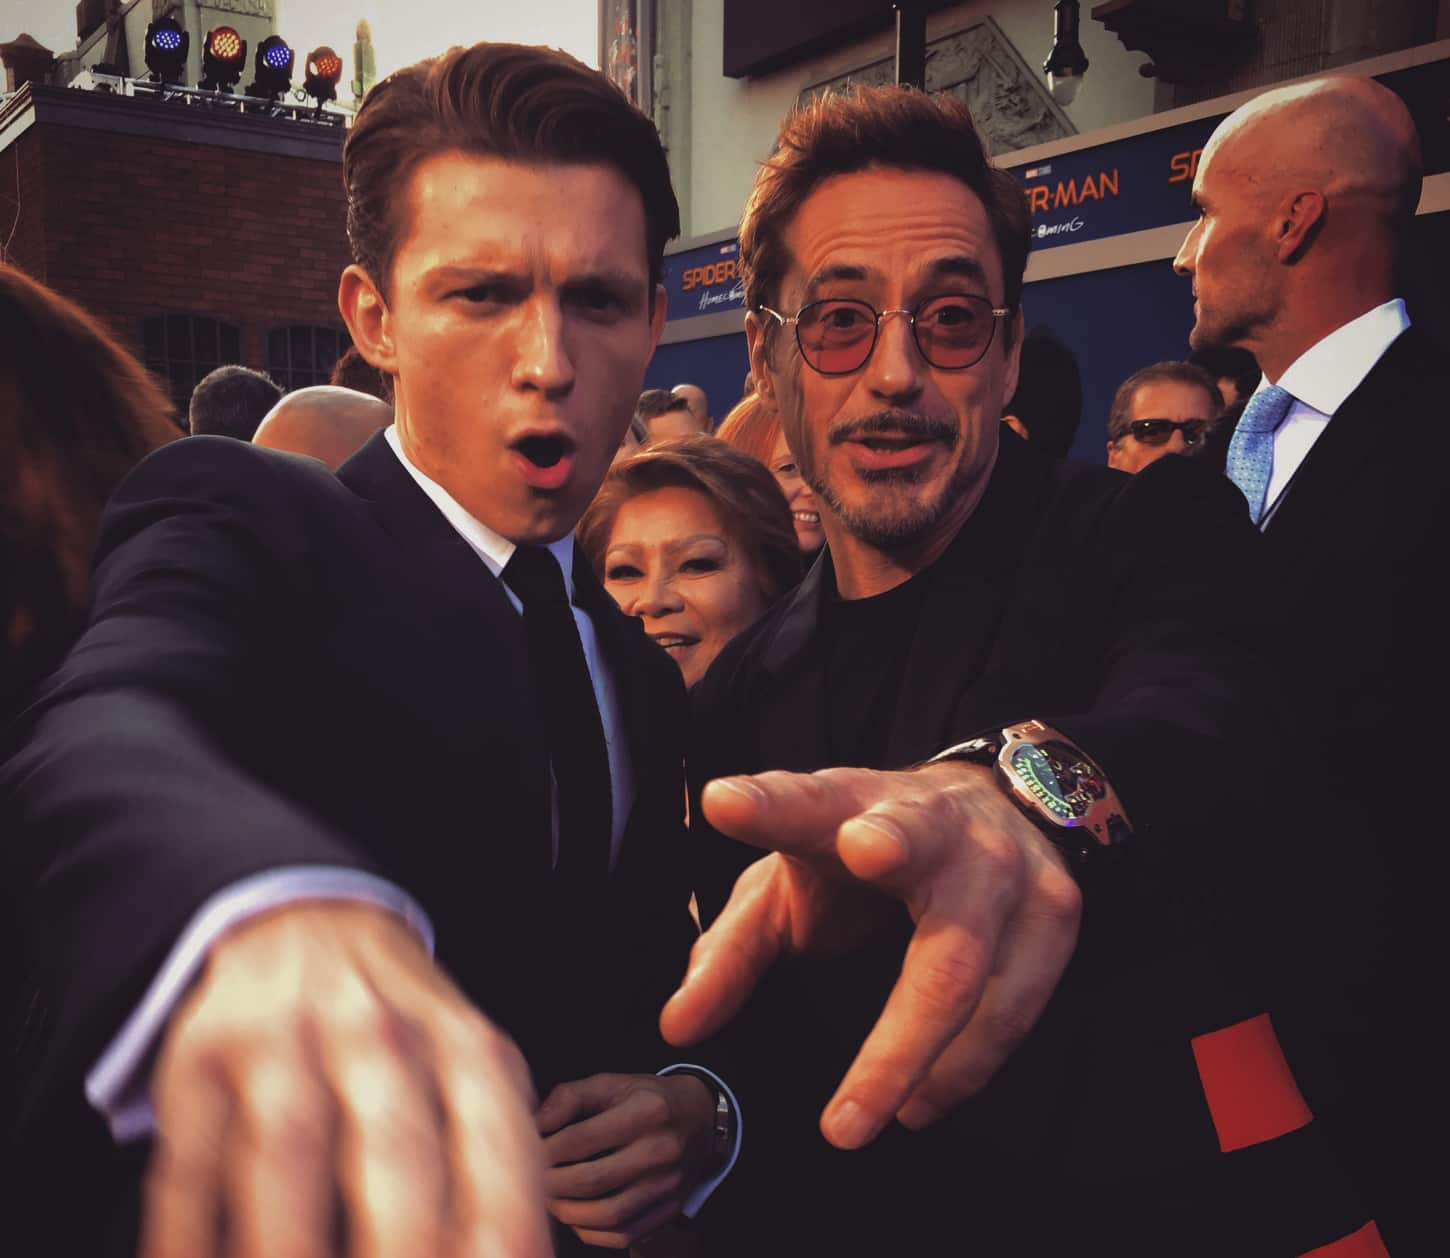 Tom Holland Is A Robert Downey Jr Fan Boy, Says 'He Holds A Special Place In My Life Like Mr Stark Does In Spider-Man's Journey'